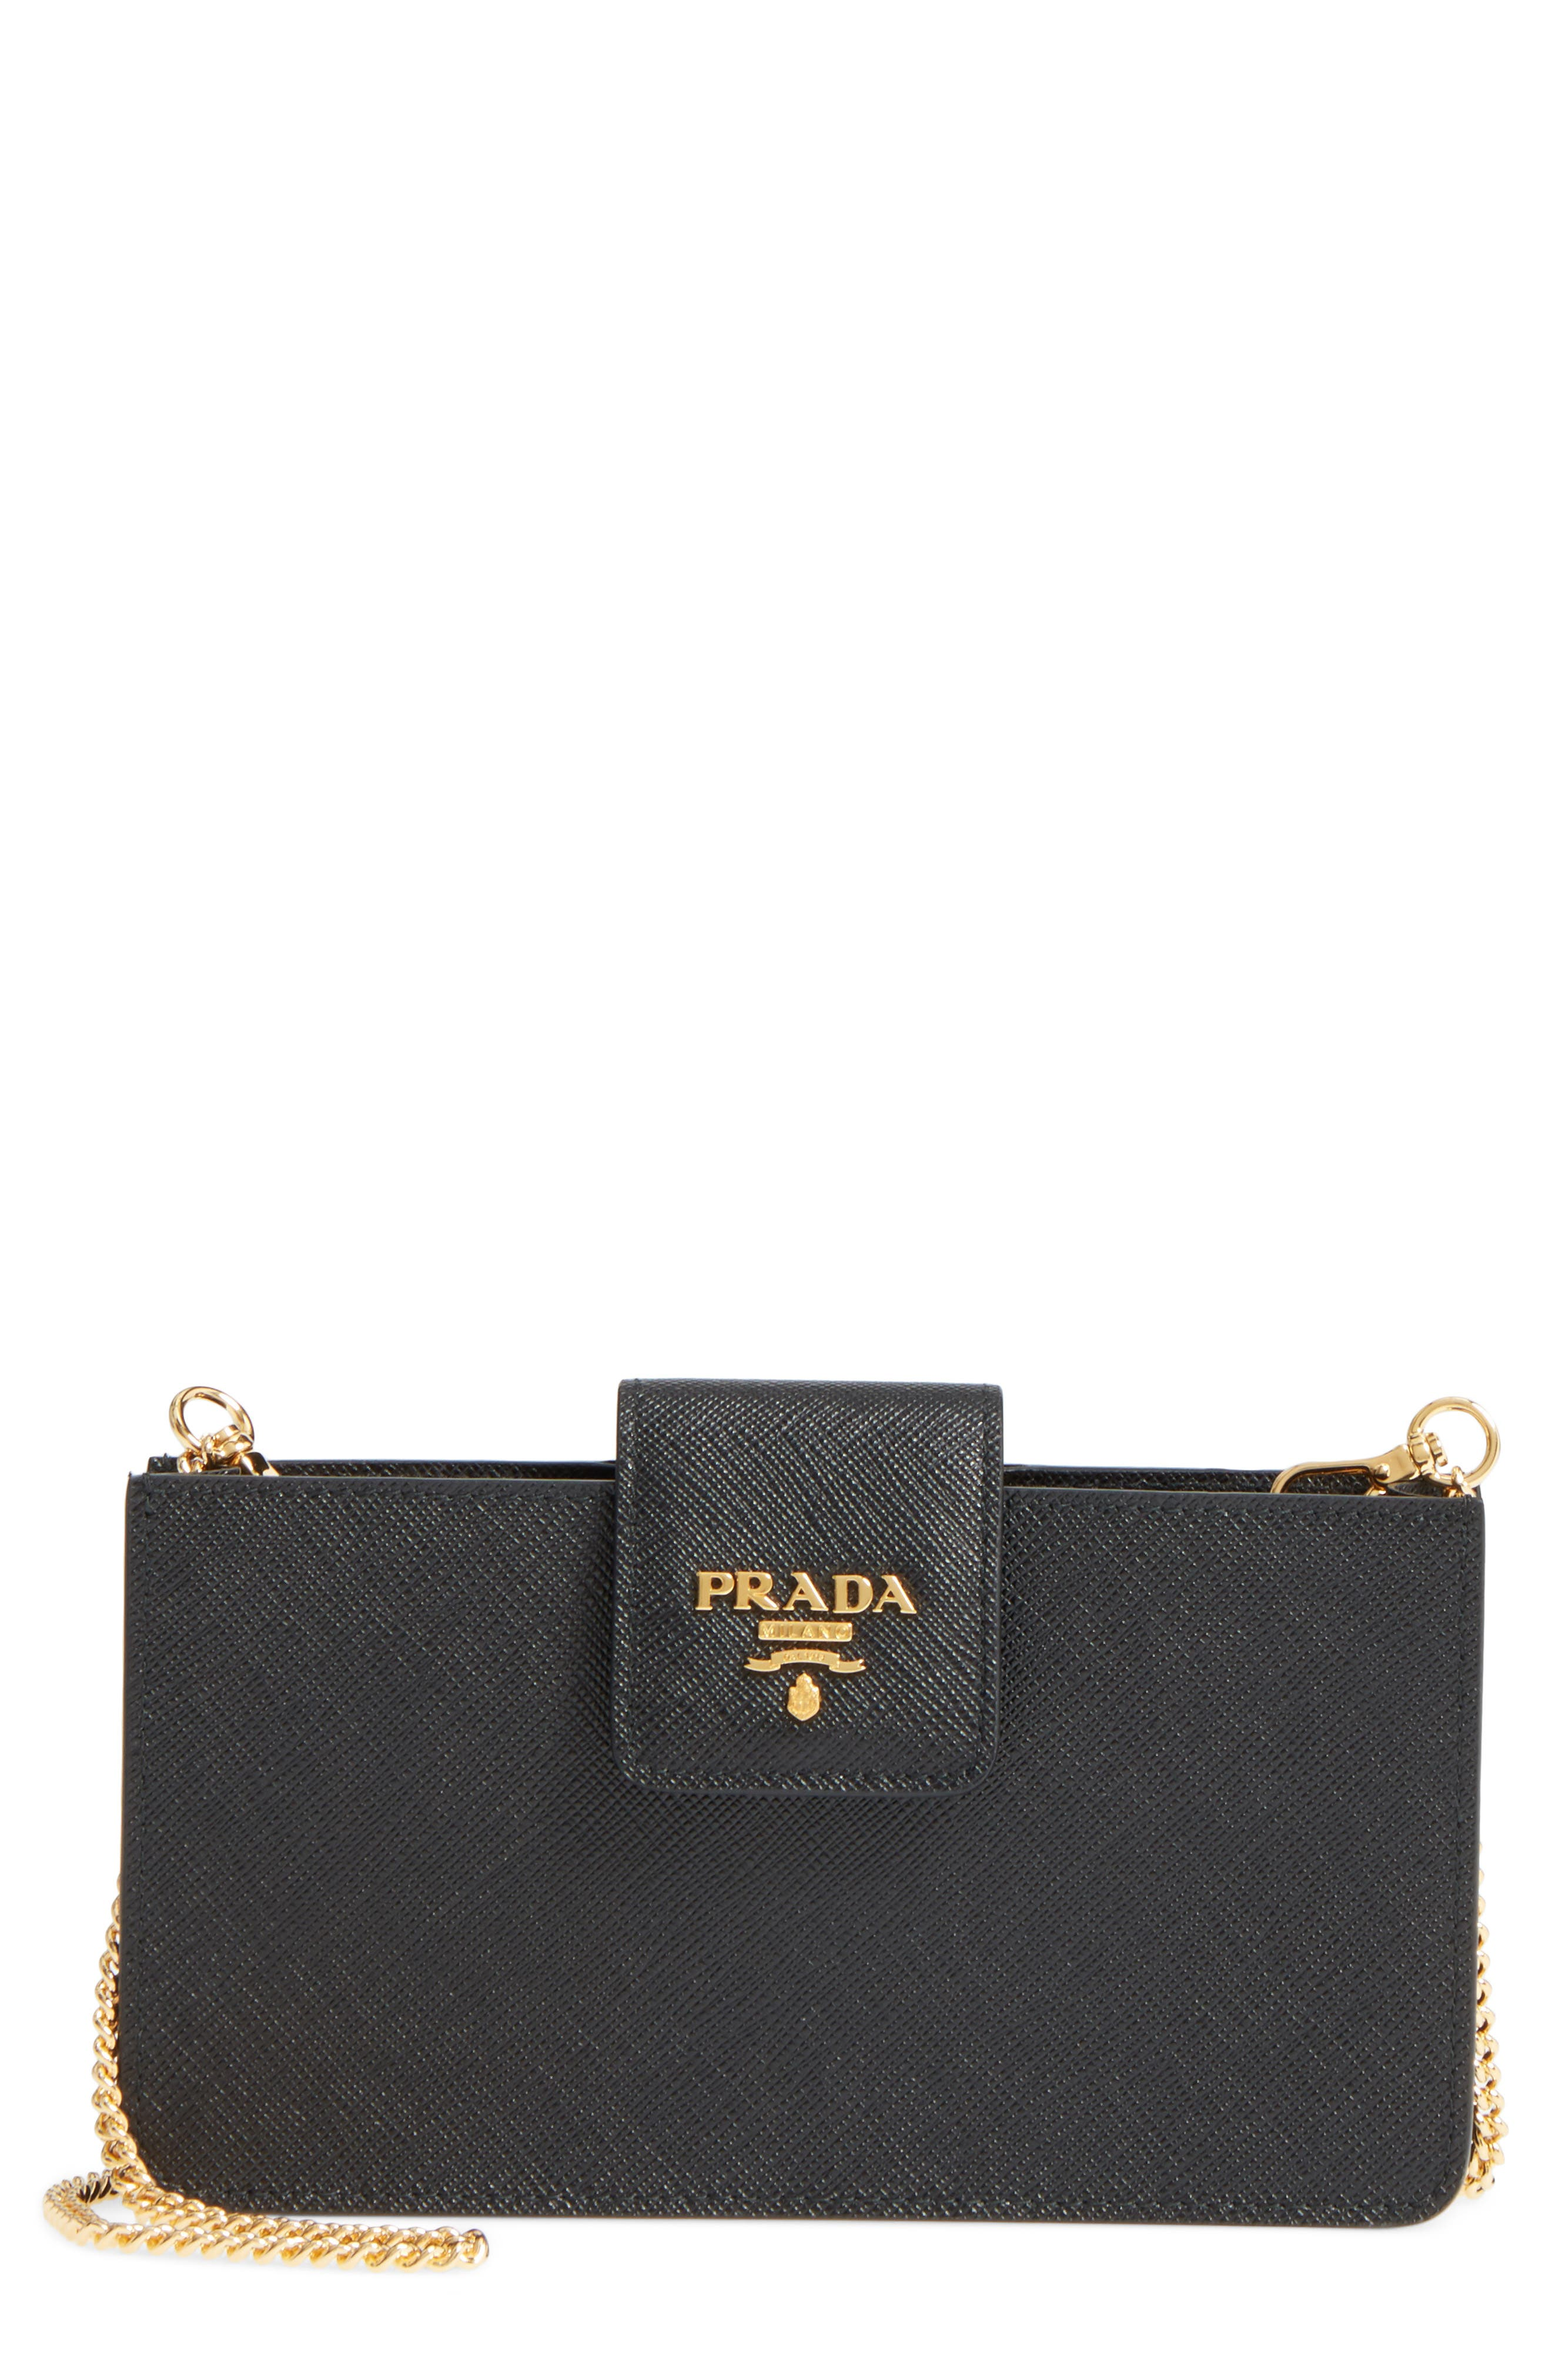 Prada Saffiano Leather Phone Wallet on a Chain